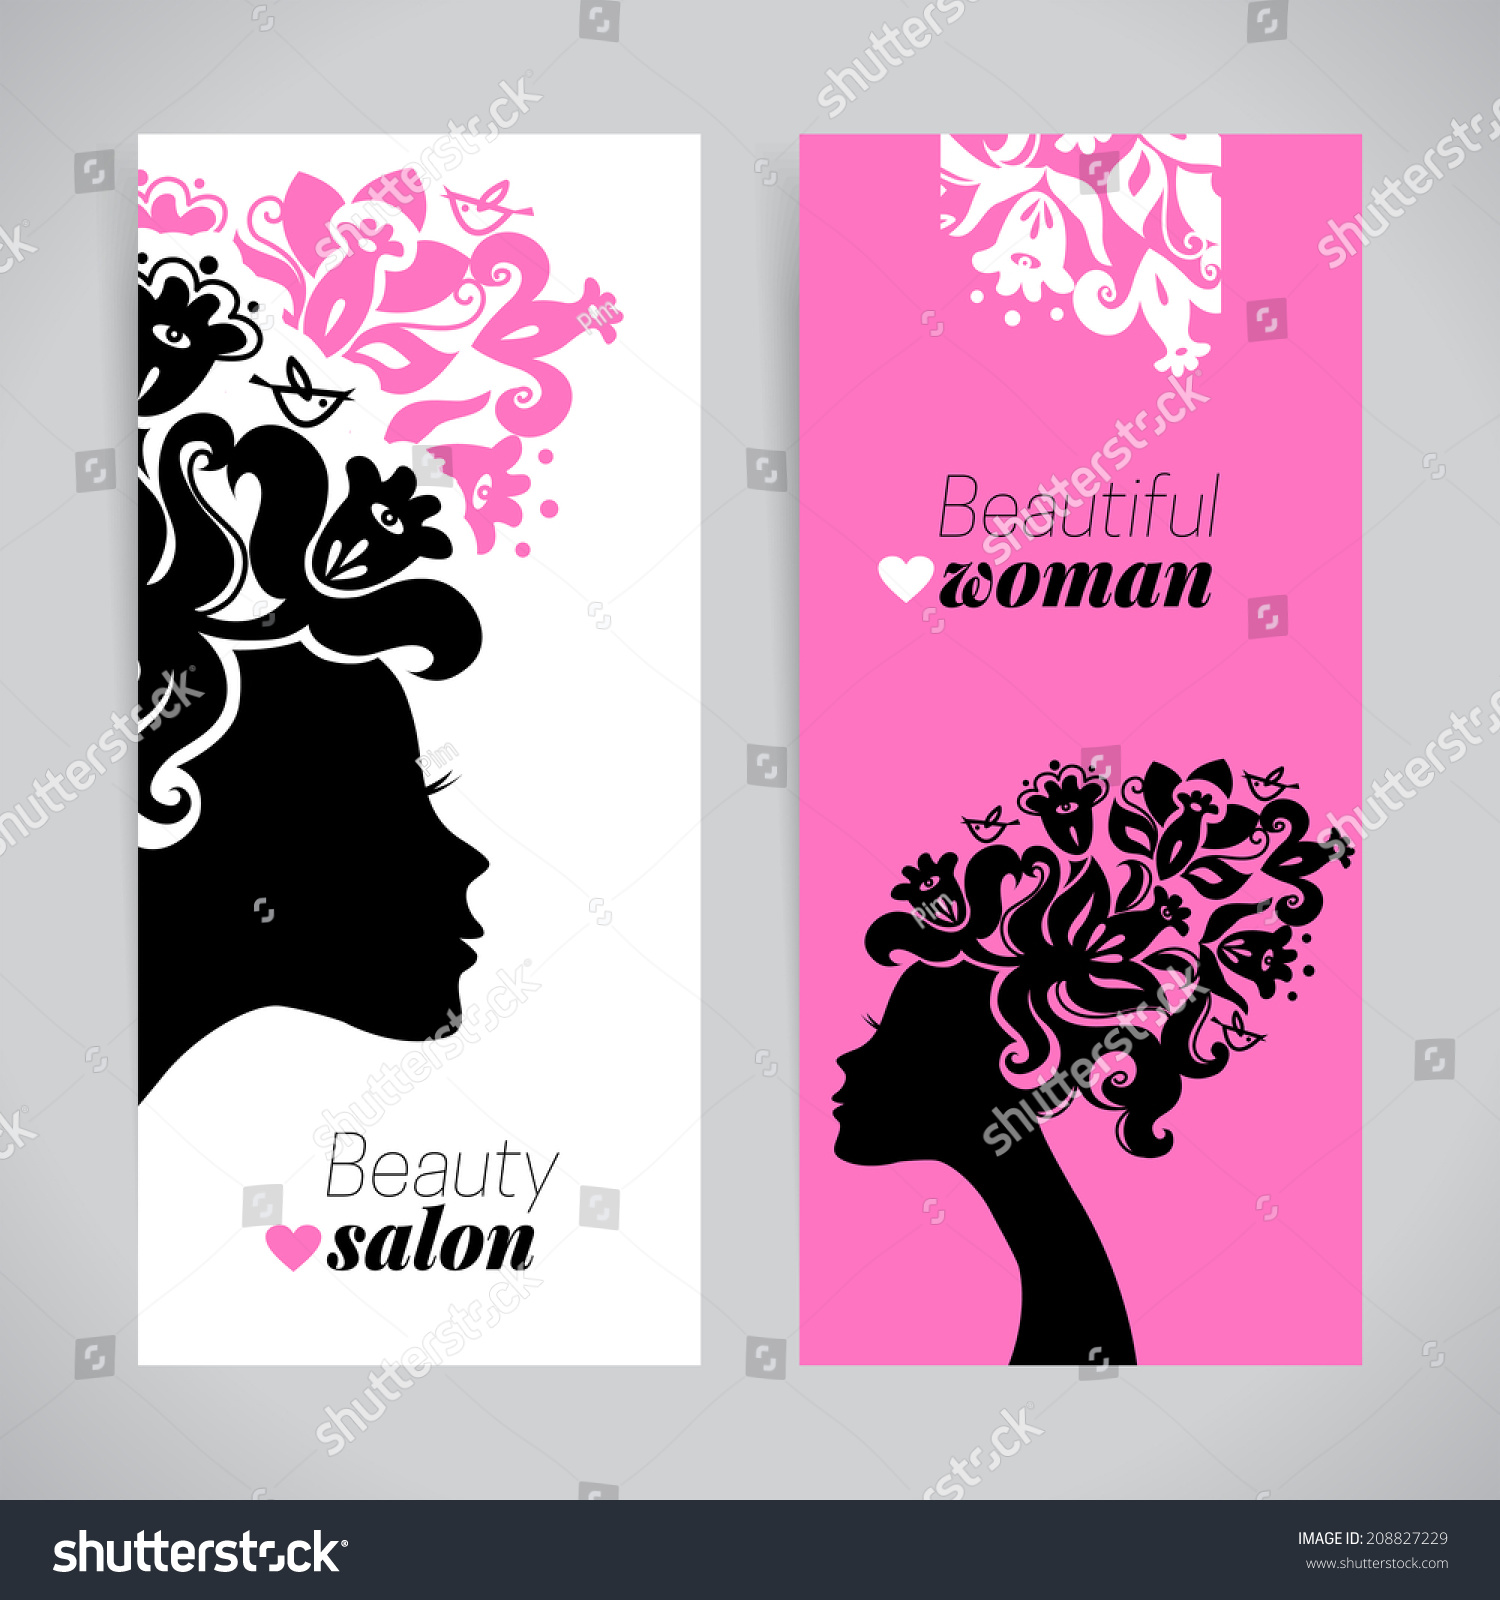 Banners Beautiful Women Silhouettes Flowers Beauty Stock Vector Royalty Free 208827229